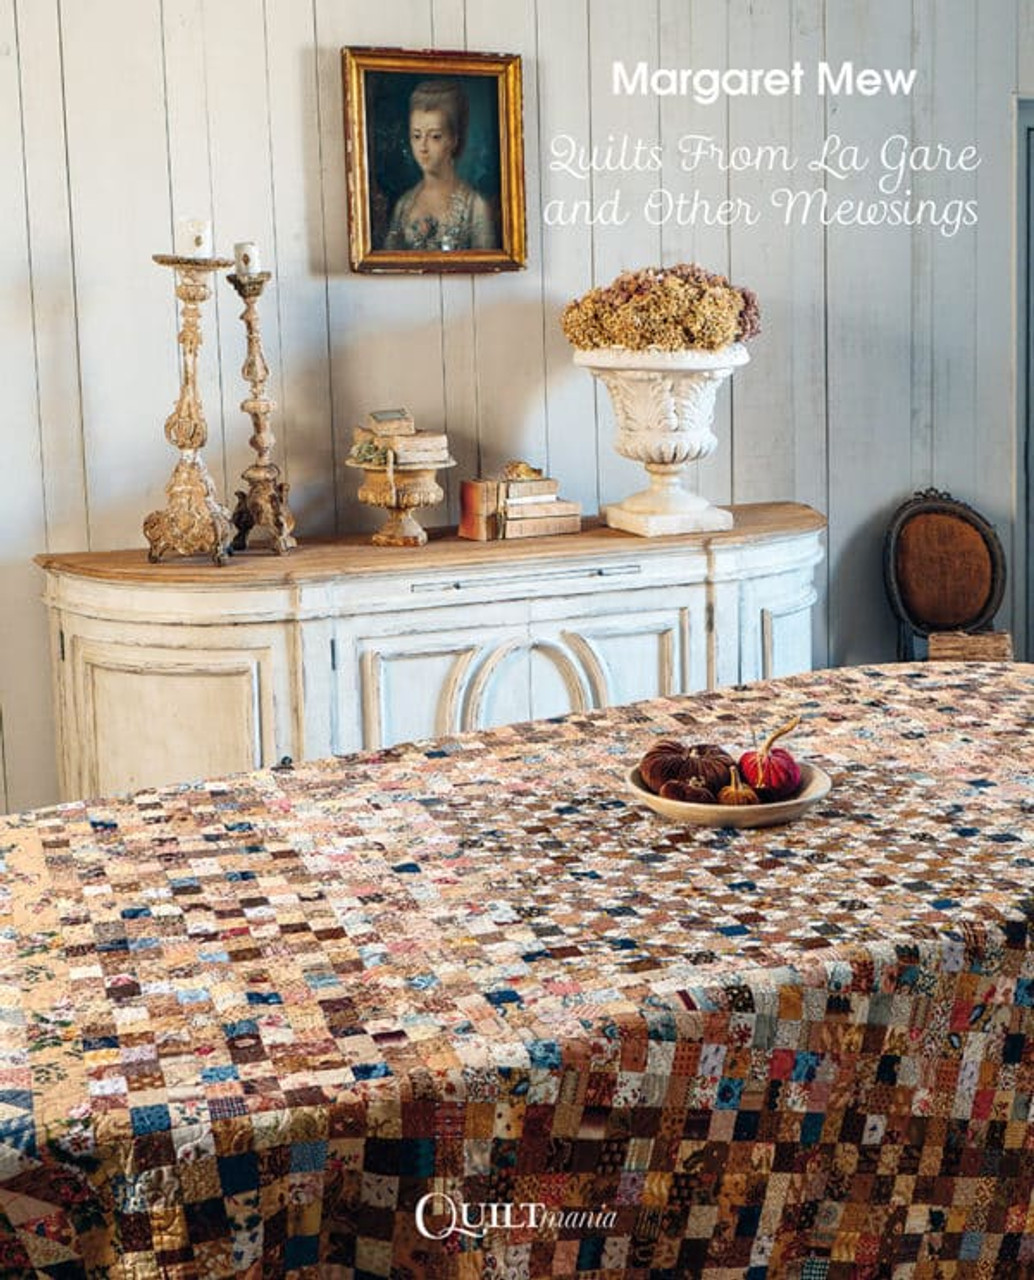 Quilts from La Gare and other Mewsings - Margaret Mew